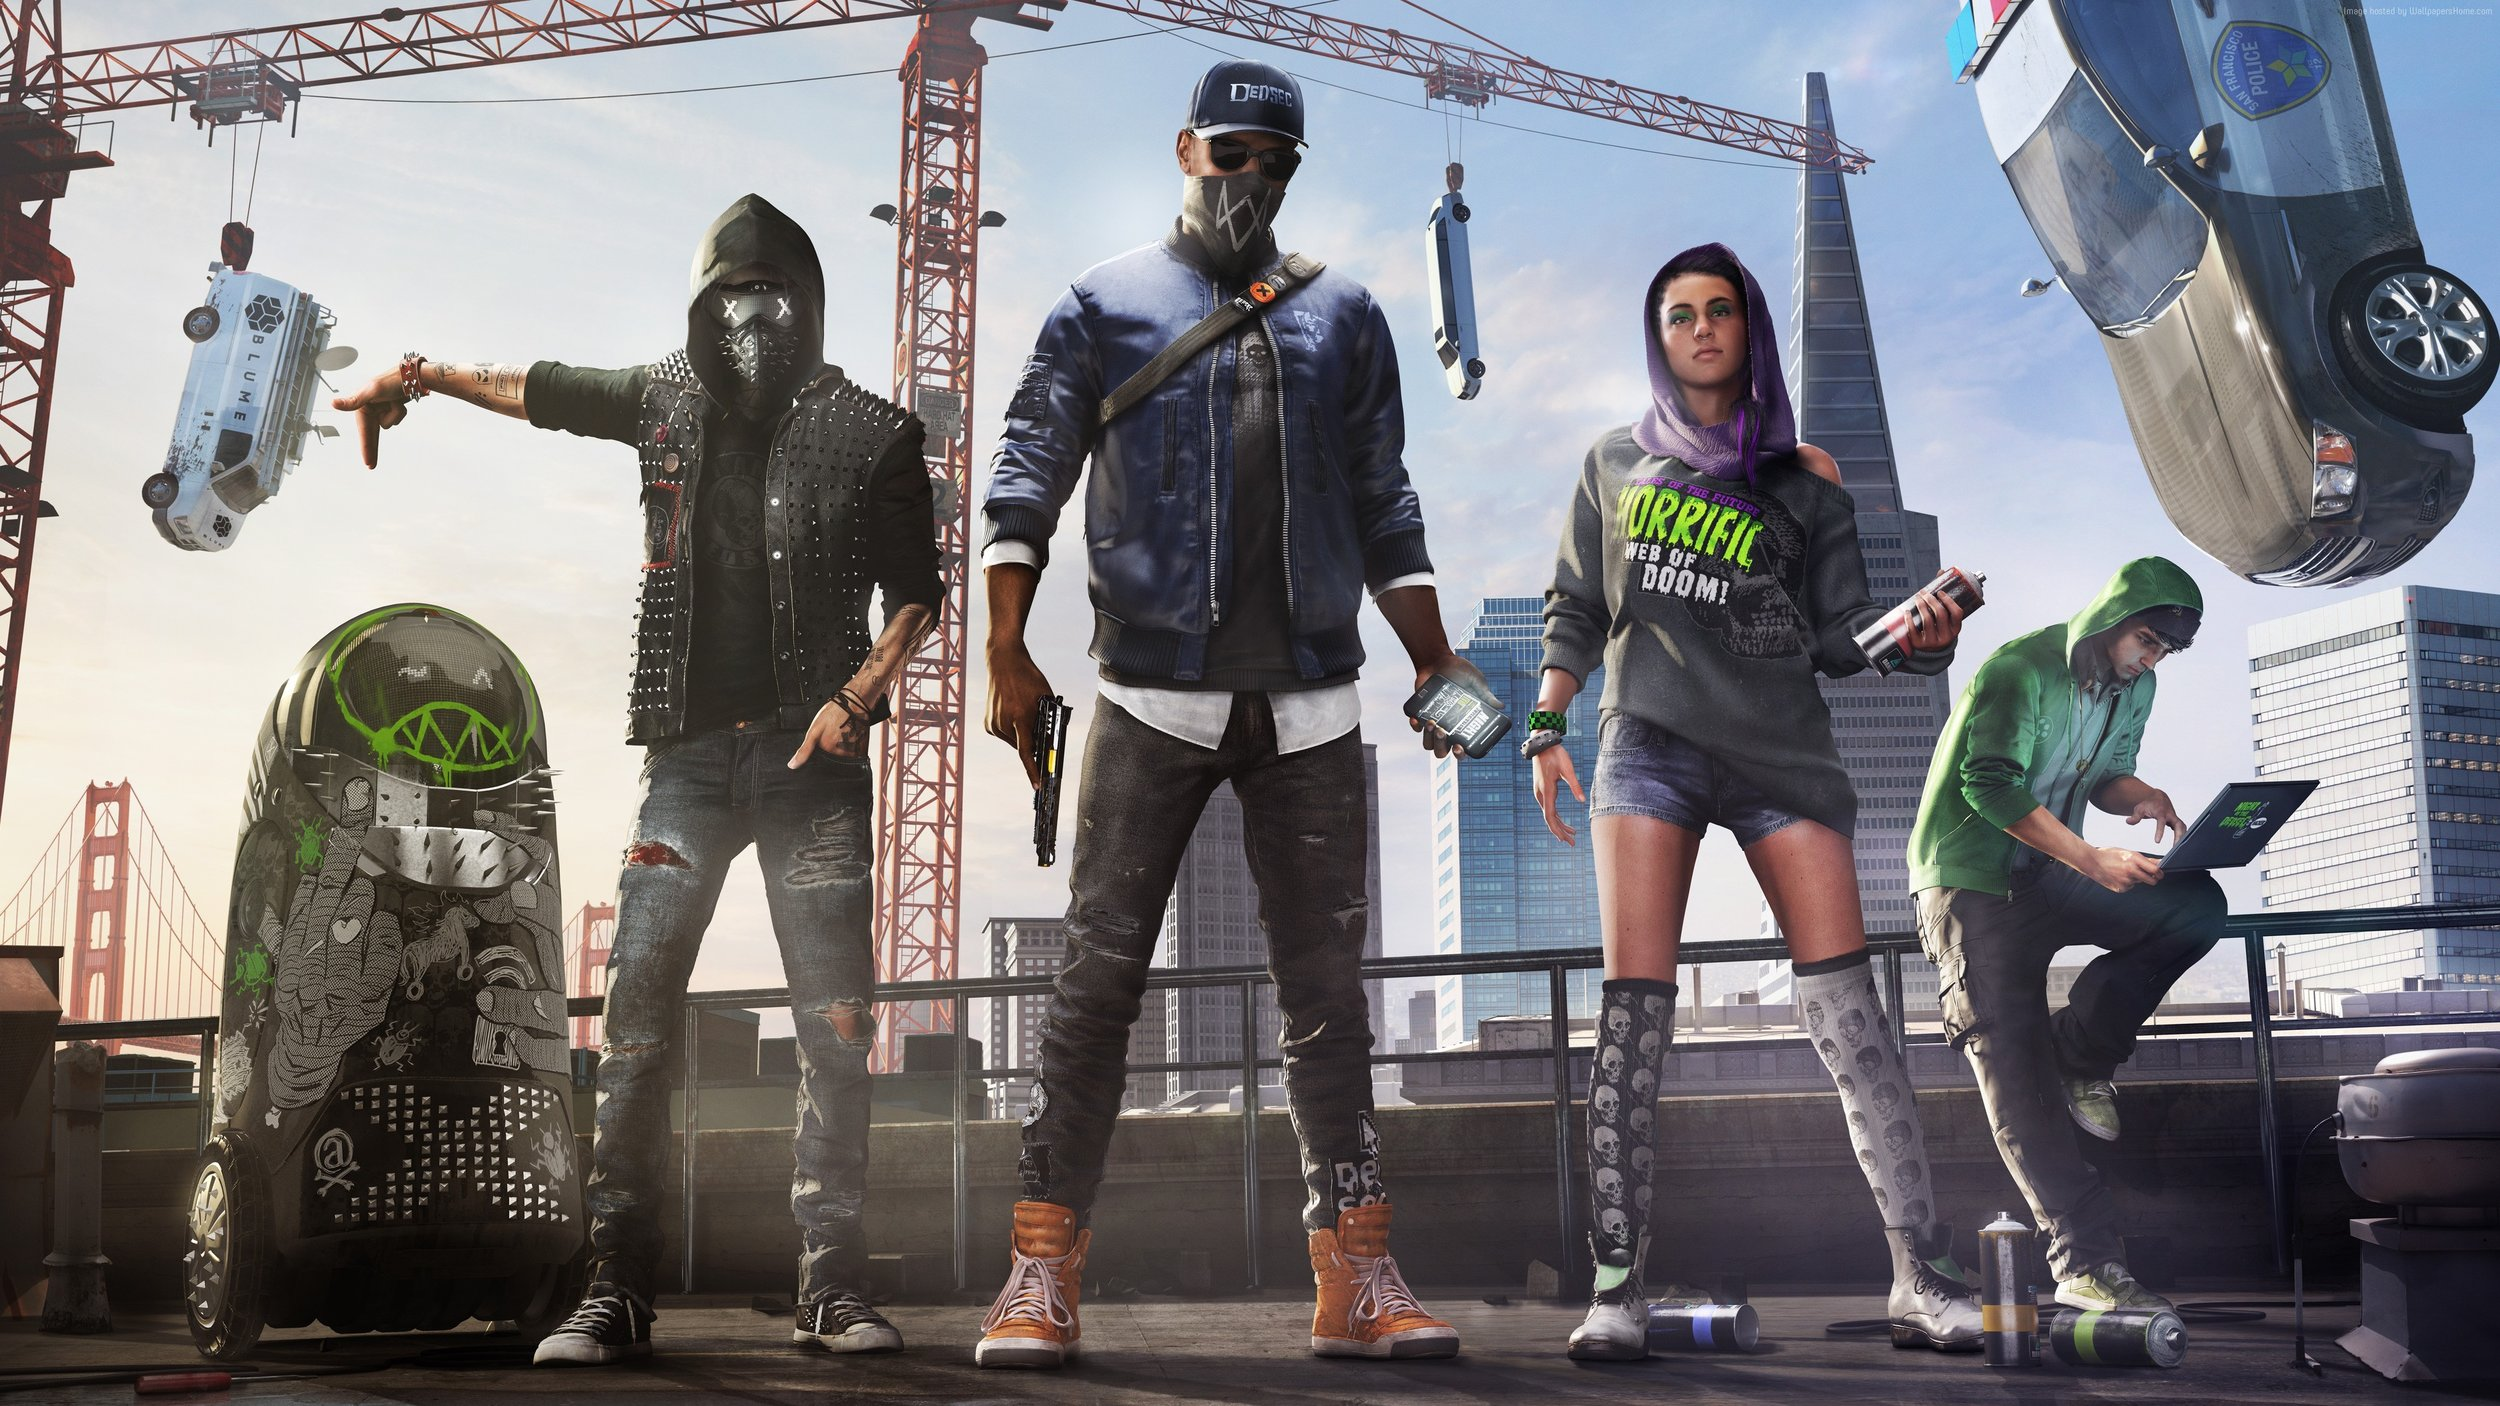 watch-dogs-2-3840x2160-pc-playstation-3-playstation-4-xbox-360-xbox-11329.jpg